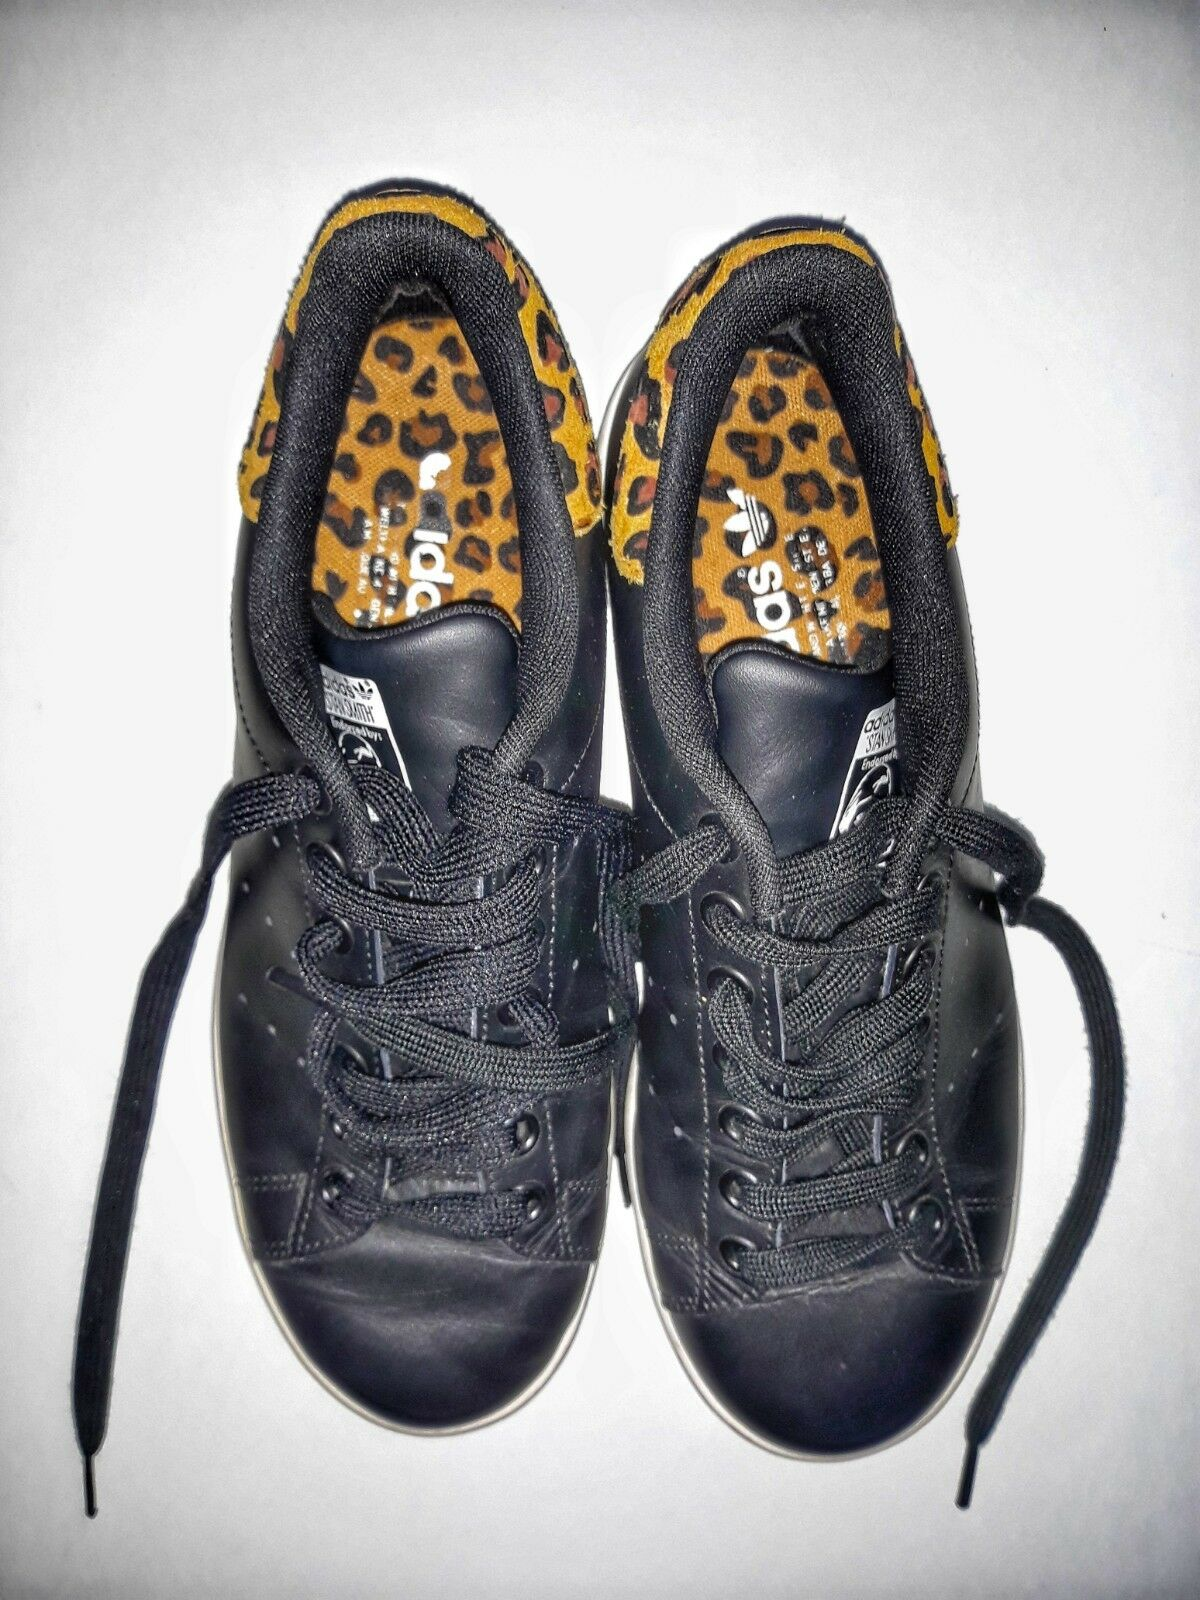 Adidas Stan Smith DONNA nere con retro leopardato n. 40 e 2 3